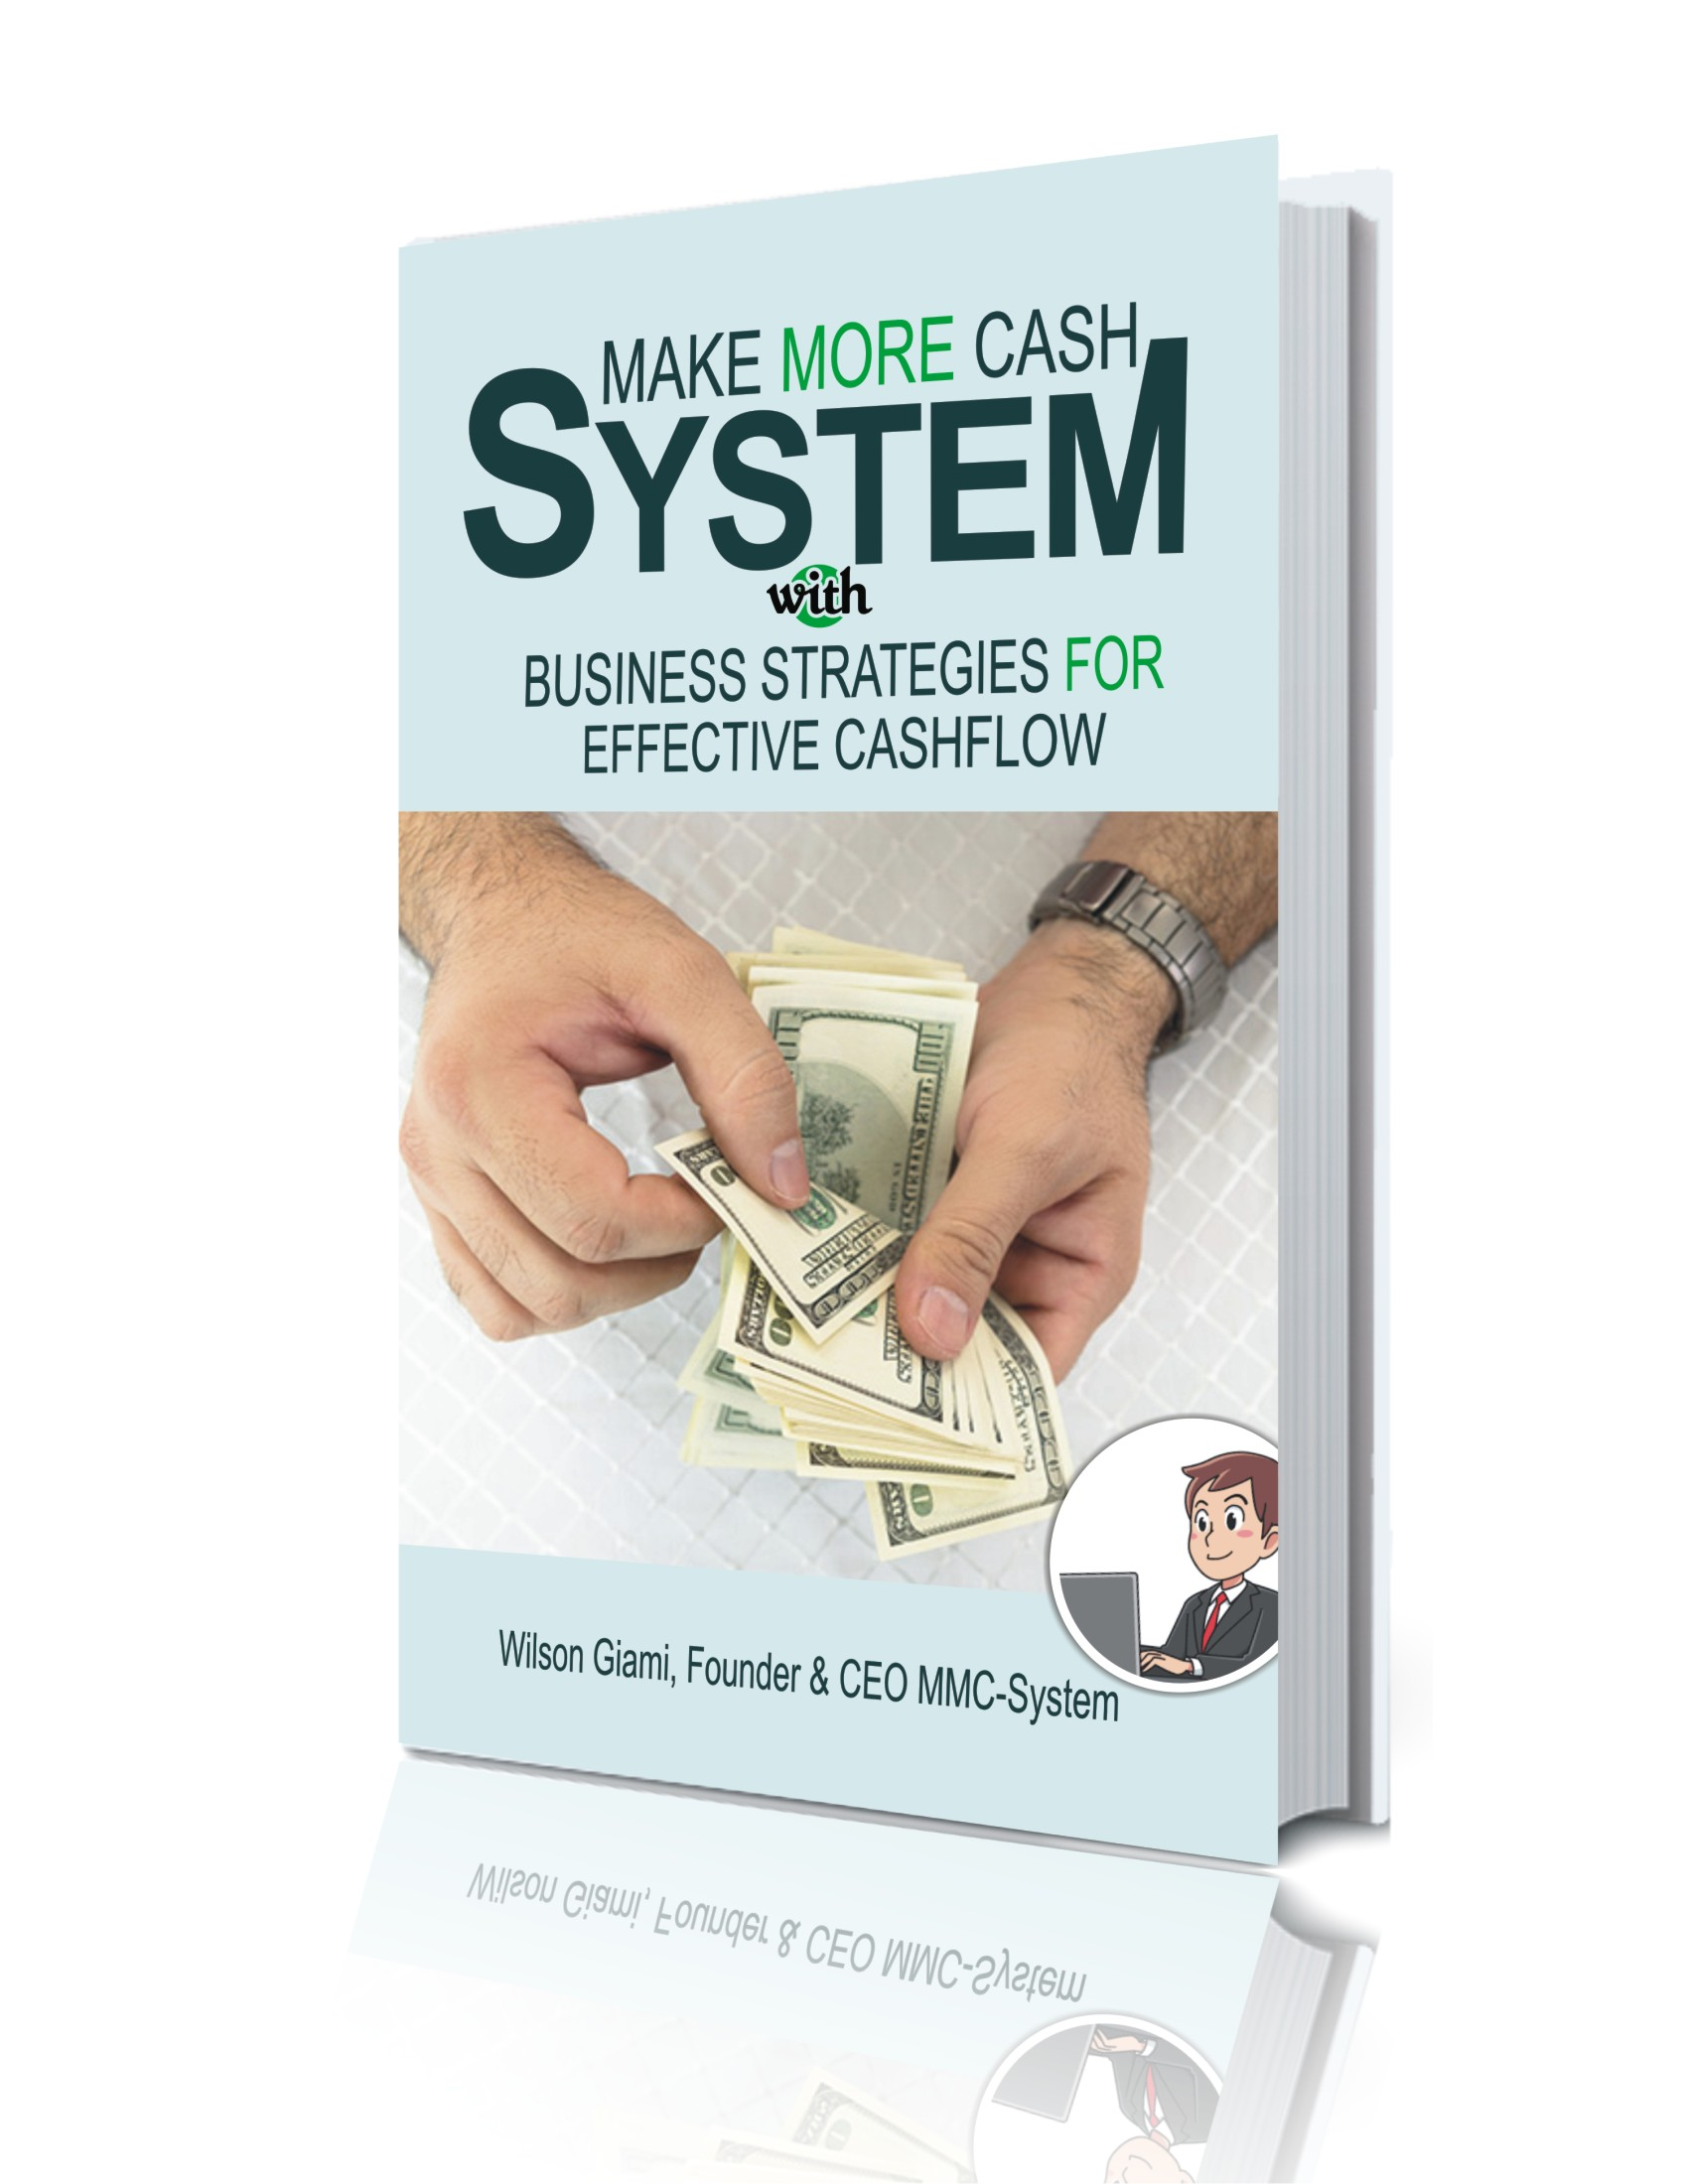 BUSINESS STRATEGIES FOR EFFECTIVE CASH FLOW